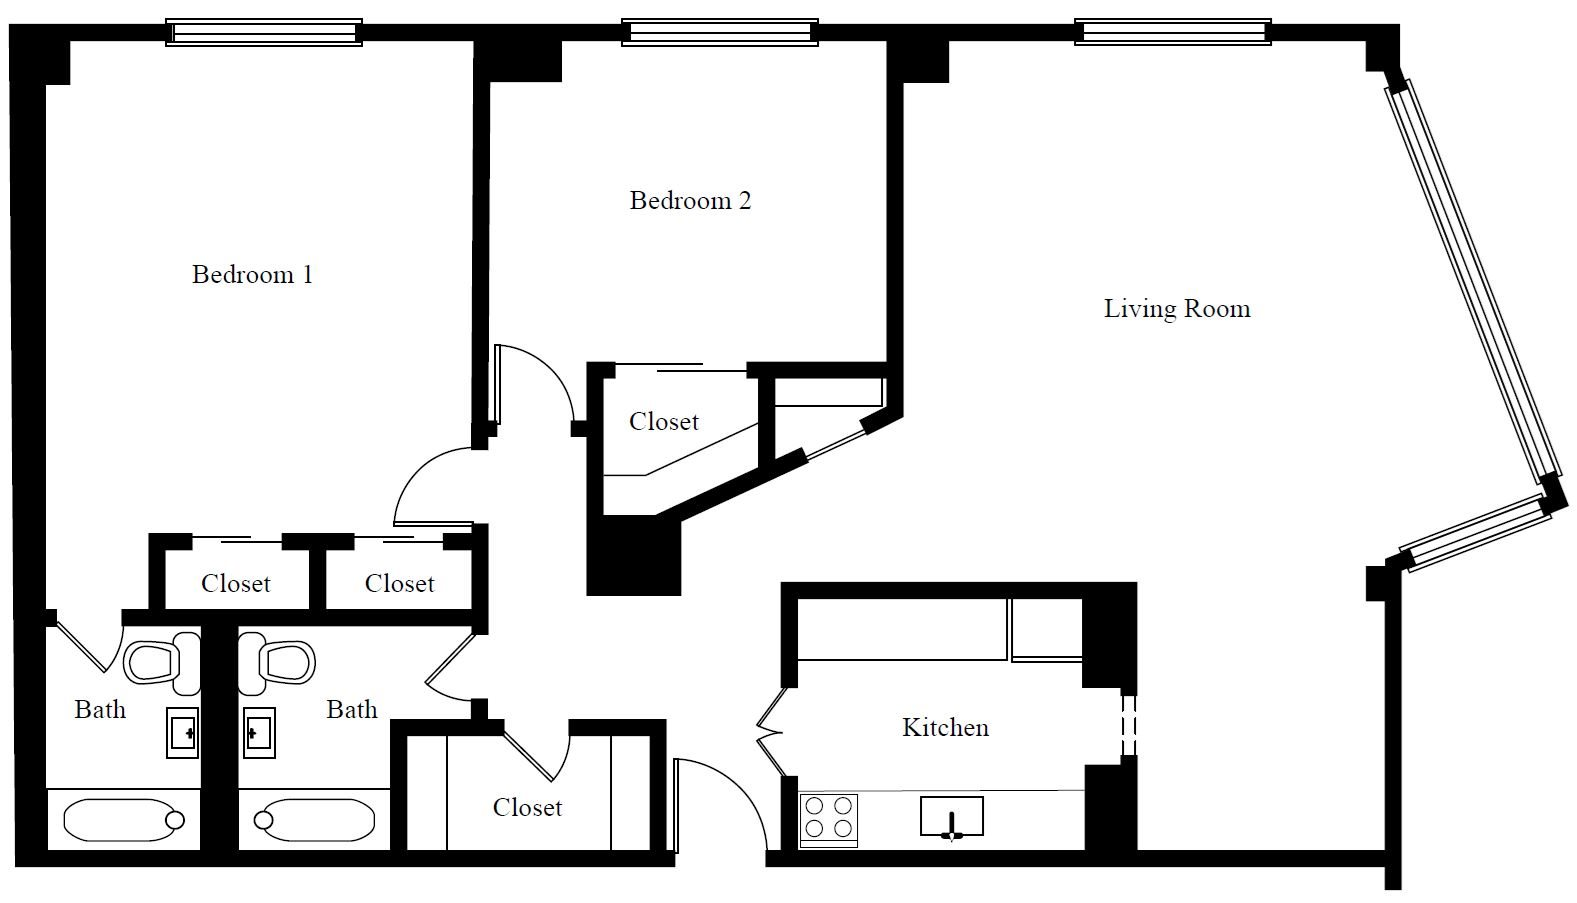 2 BR B Tier PH Floor Plan 10